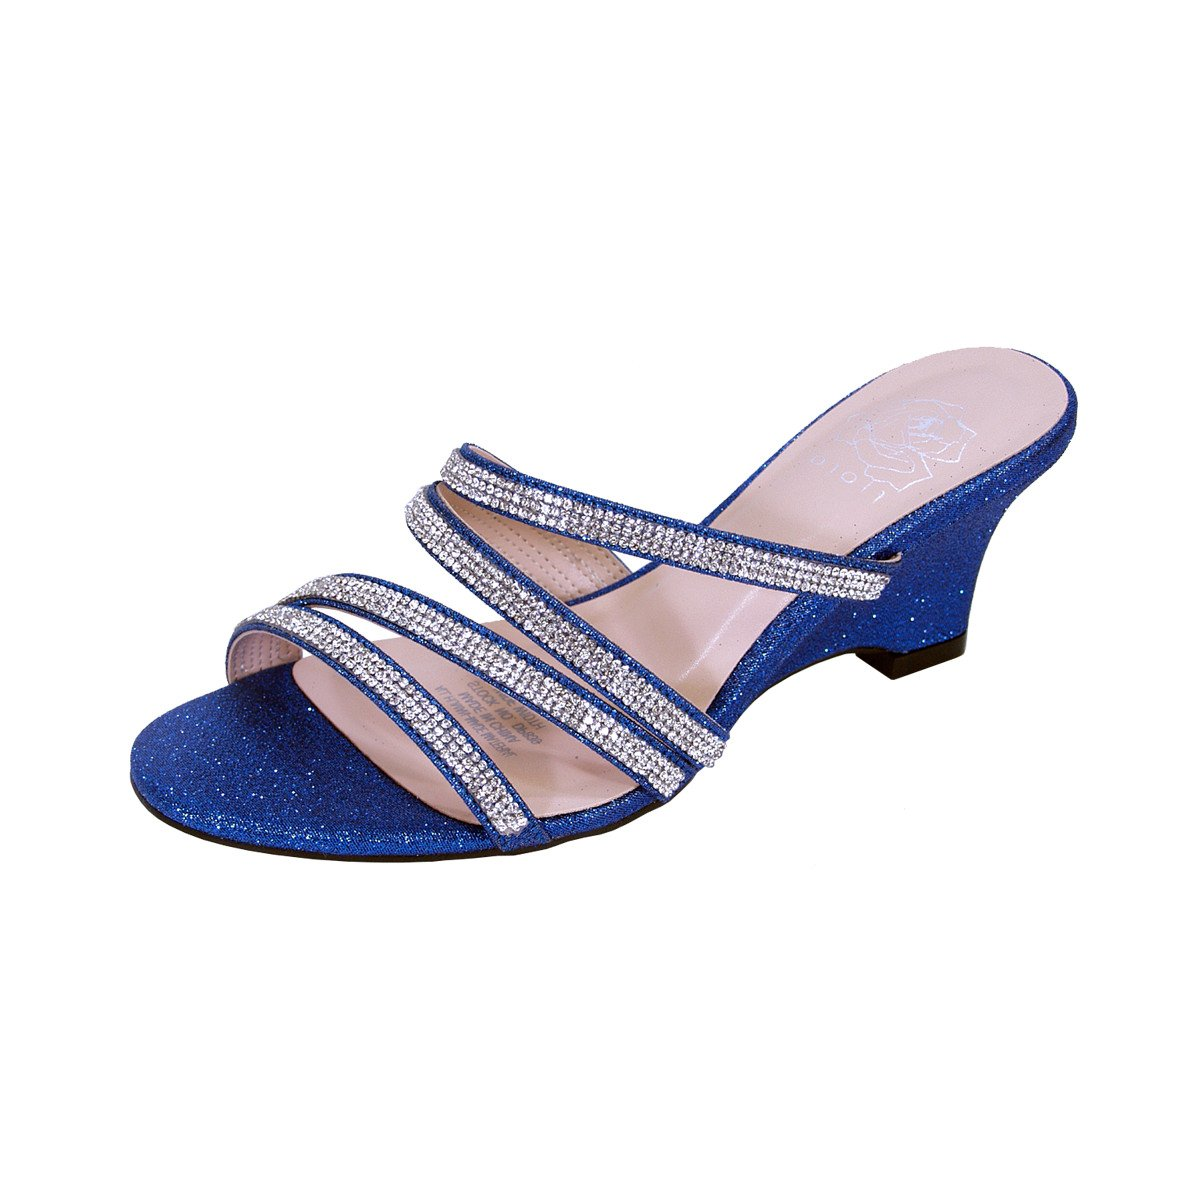 Floral Kelly Women Wide Width Rhinestone Strappy Slip On Wedge Heeled Party Sandals (Size/Measurement) B079C637RP 6 E|Blue